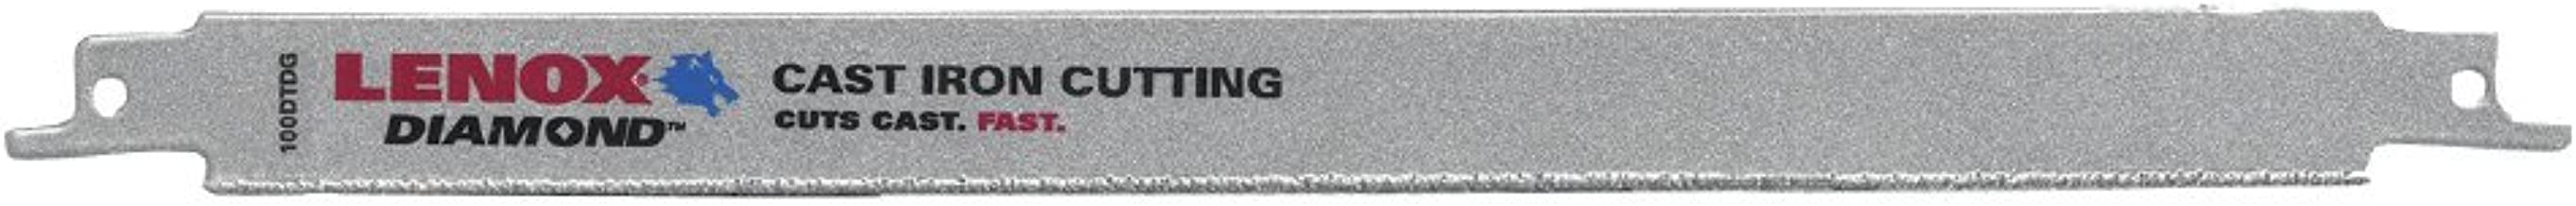 LENOX Tools Reciprocating Saw Blade, Double-Tang, 11-inch, Diamond-Grit (1766356)